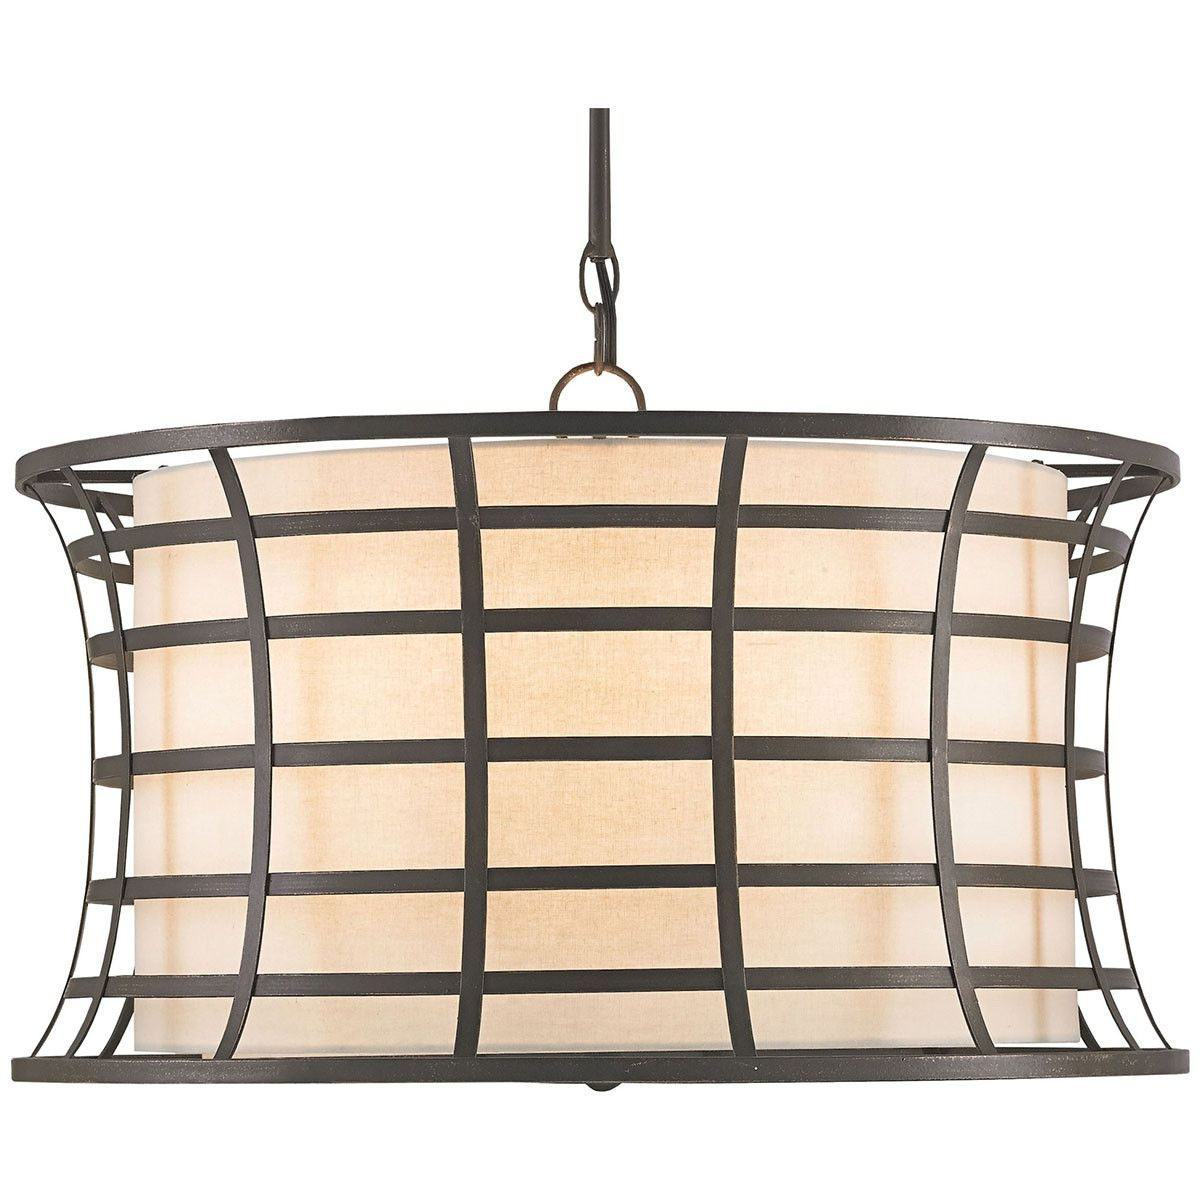 Currey and Company Coleville Chandelier 9363